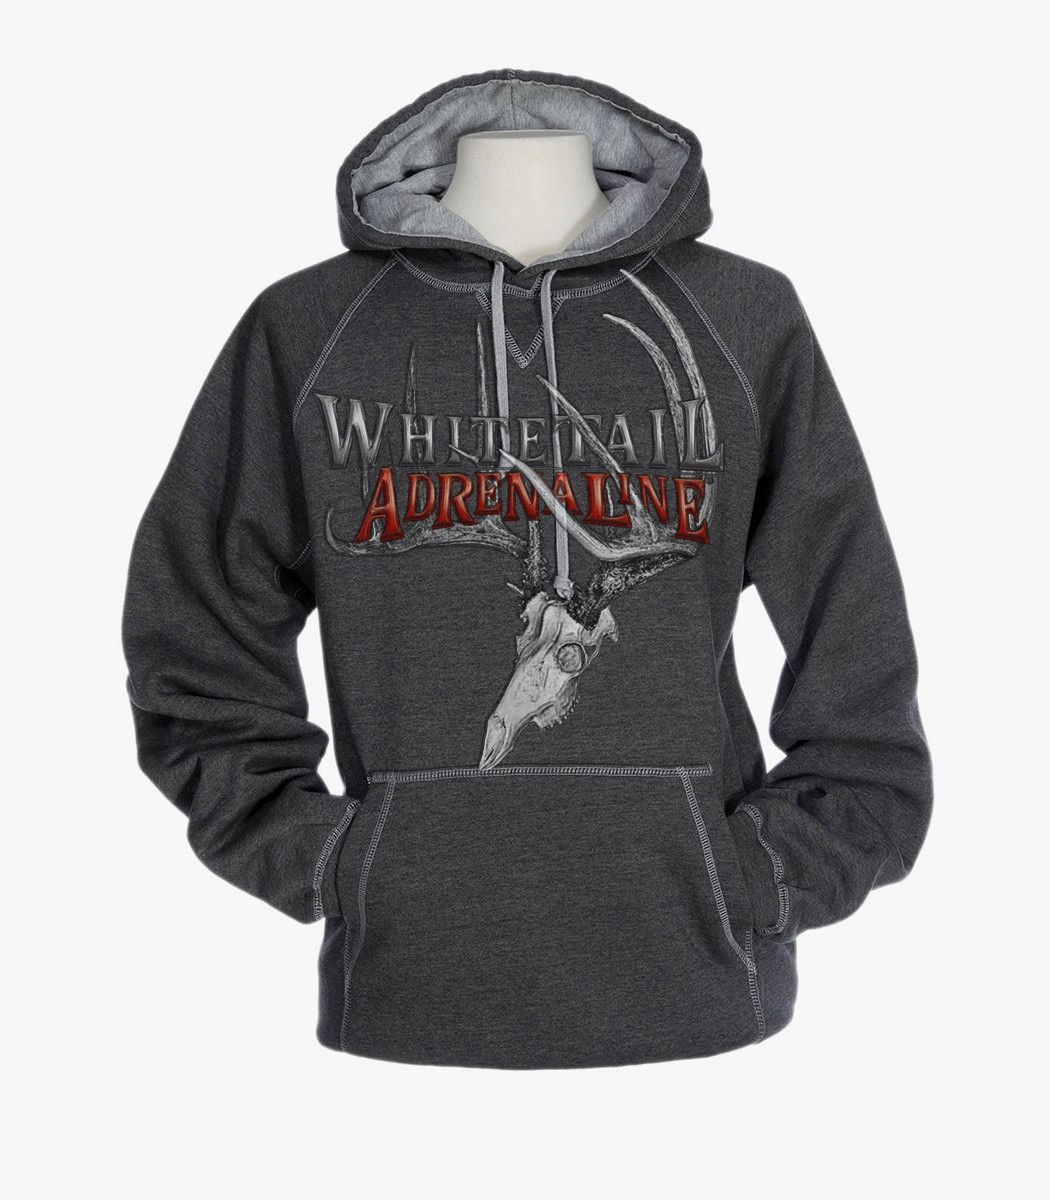 ac713a1da9 Heavyweight Grey Cross Stitch Hoodie | 200 Buck Design - Whitetail  Adrenaline Men's Sweatshirts, Hoodies